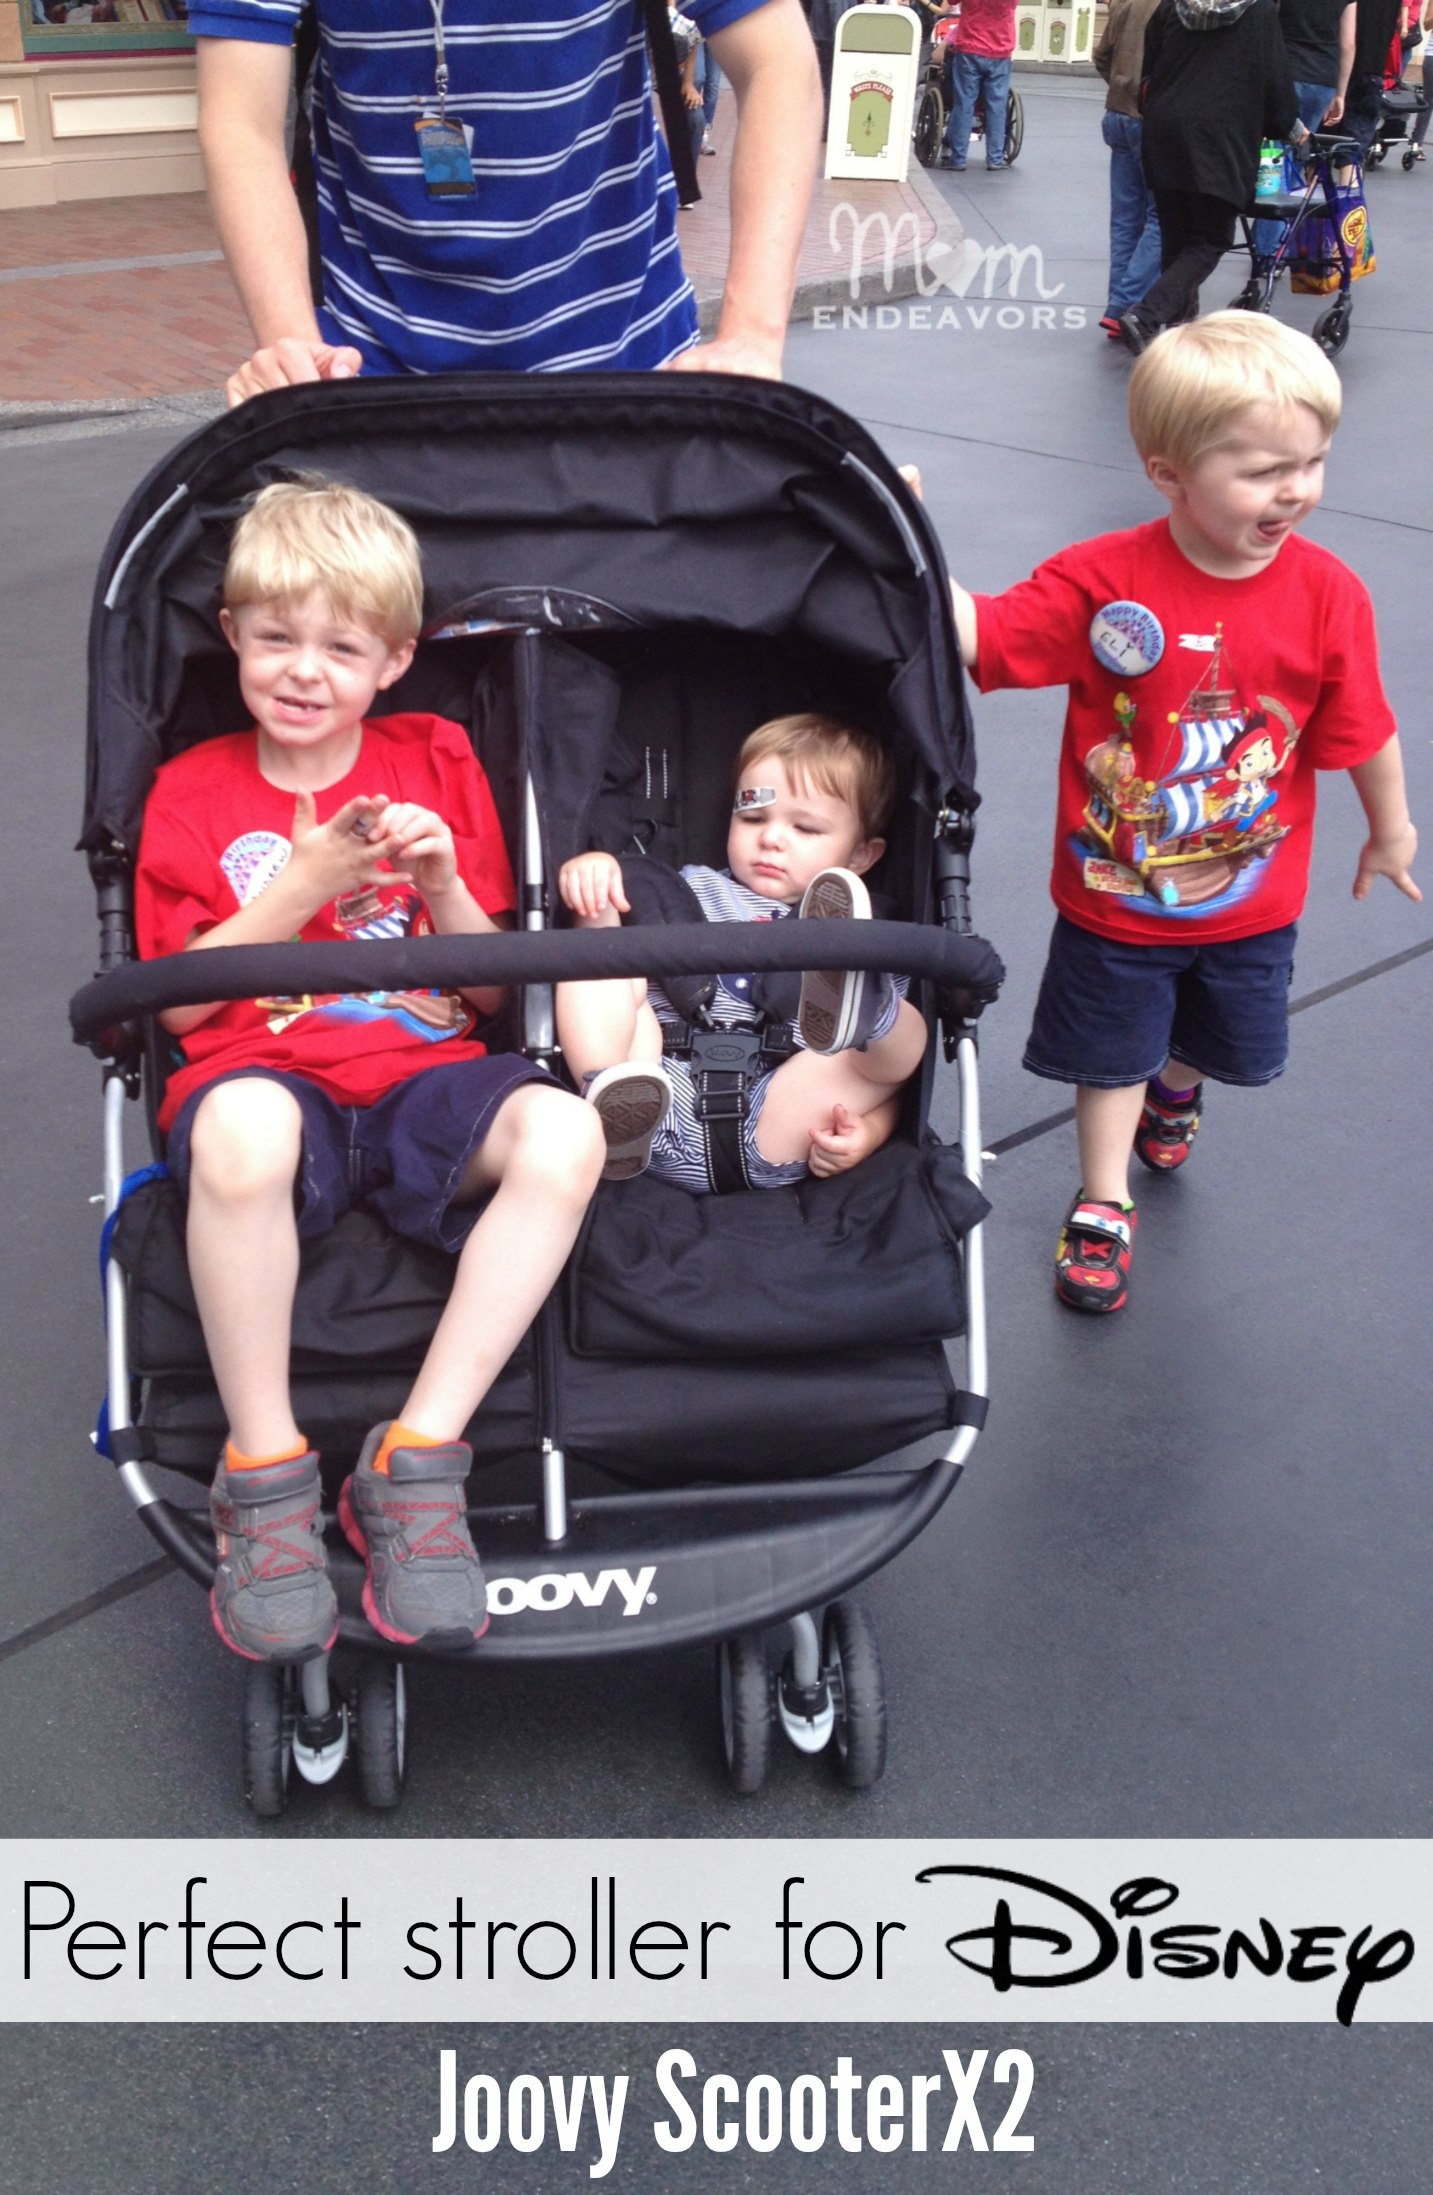 Travel Stroller Recline The Perfect Double Stroller For A Disney Trip – Joovy